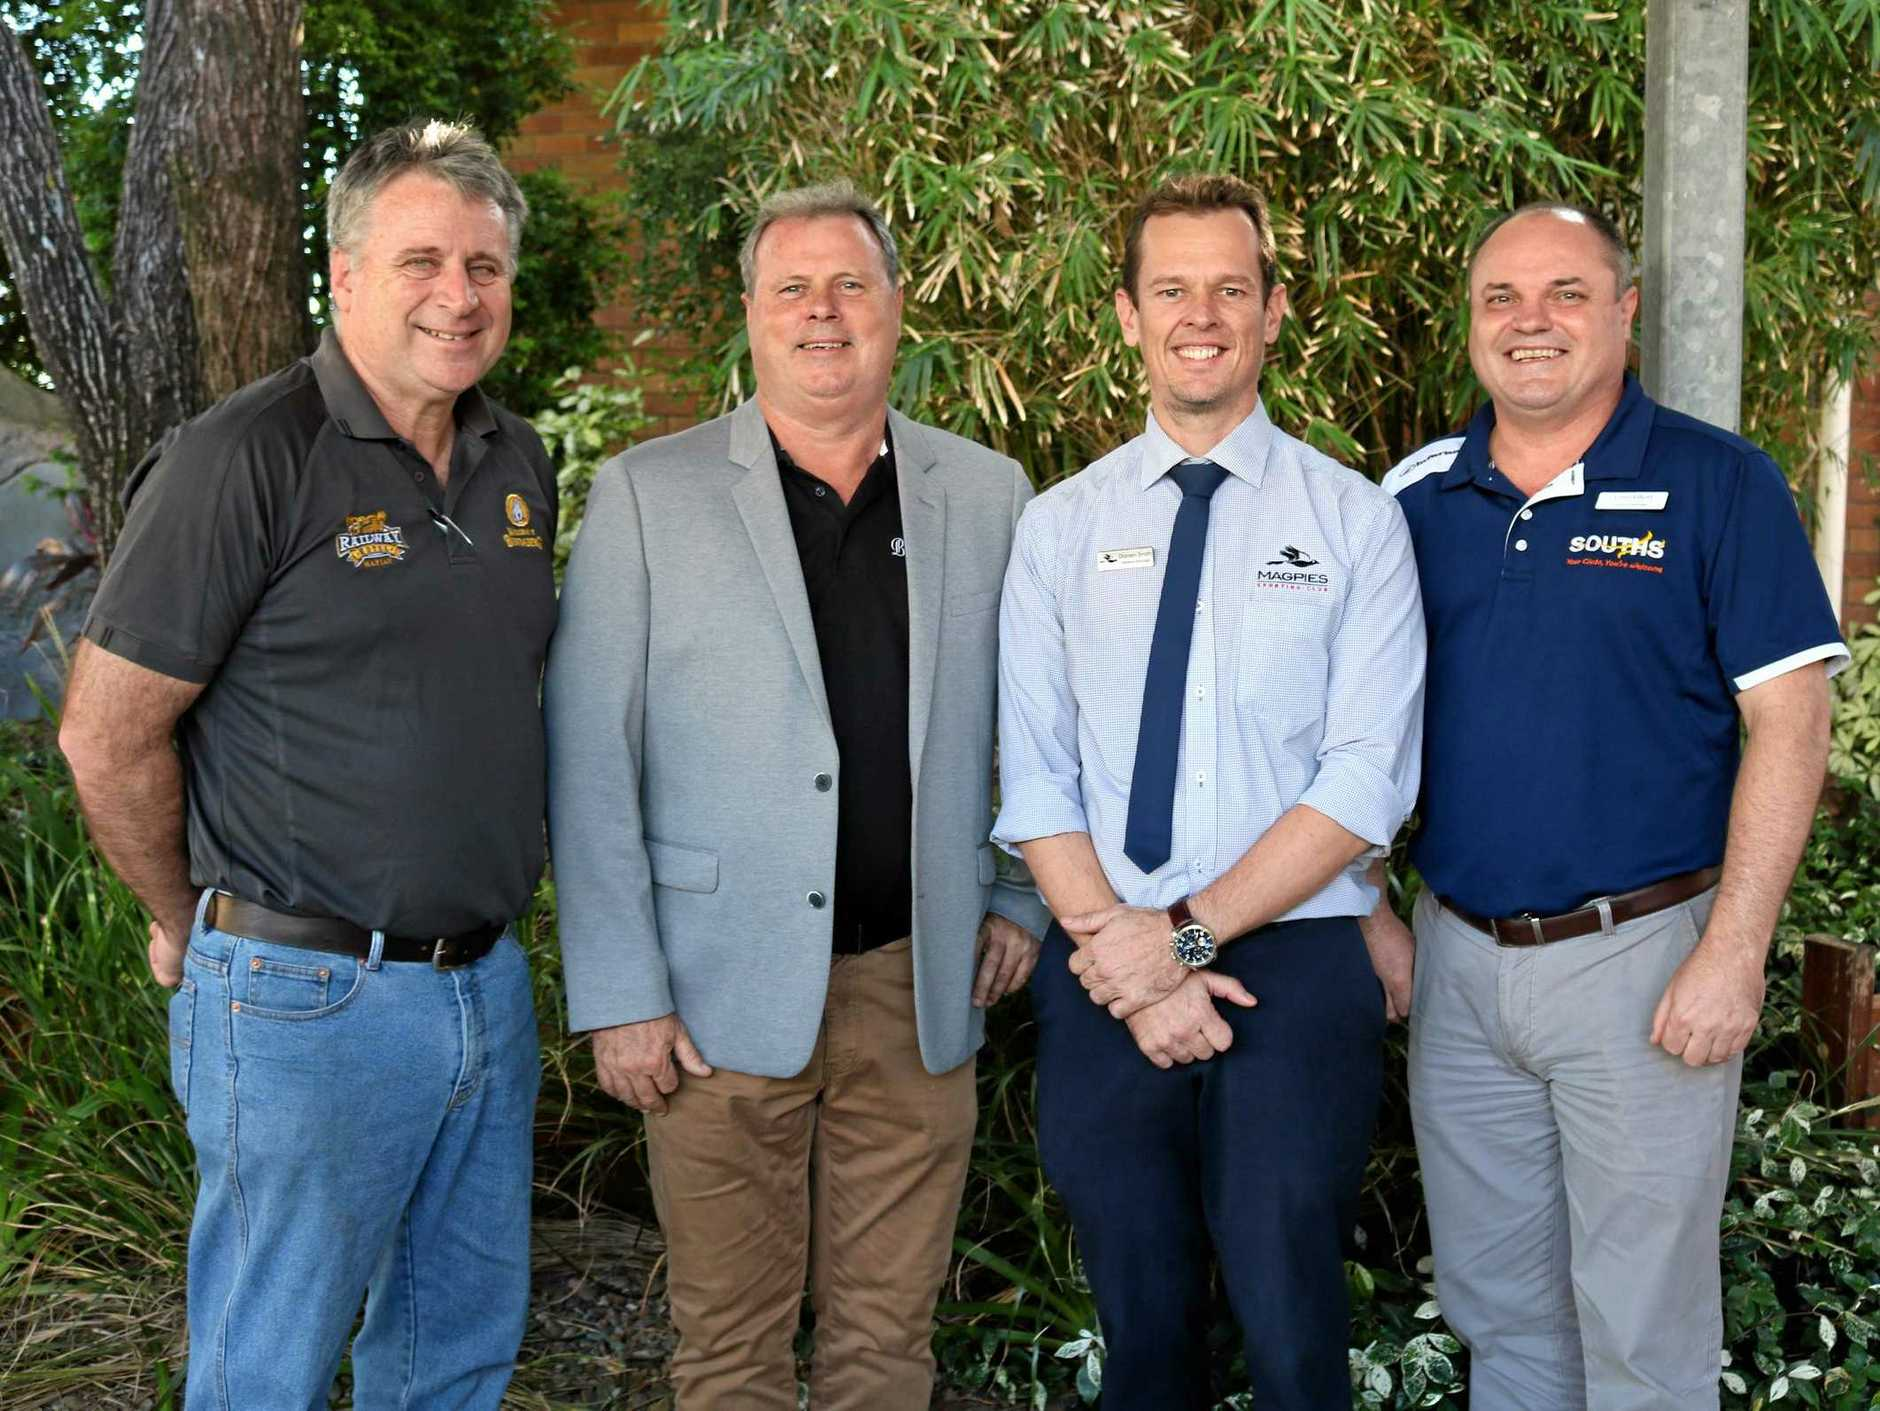 GENEROUS: Bryan Sheedy of the Railway Hotel, Doug Daly from the Northern Beaches Bowls Club, Darren Smith of Magpies Sporting Club and Chris Elliott of the Souths Leagues Club helped make it possible for more students to attend the Youth Literary Festival.